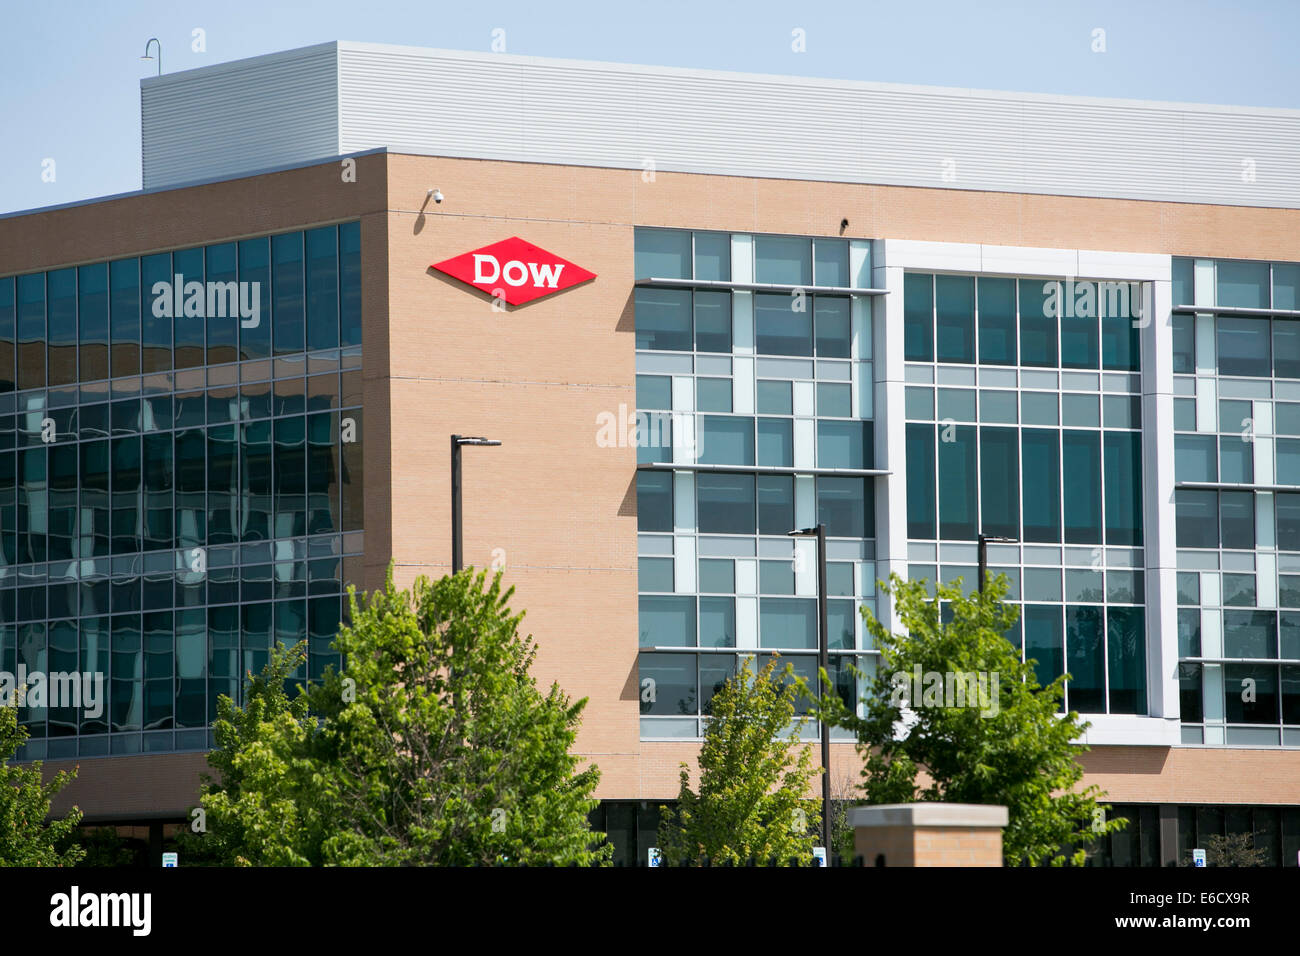 The headquarters of the Dow Chemical Company in Midland, Michigan. - Stock Image